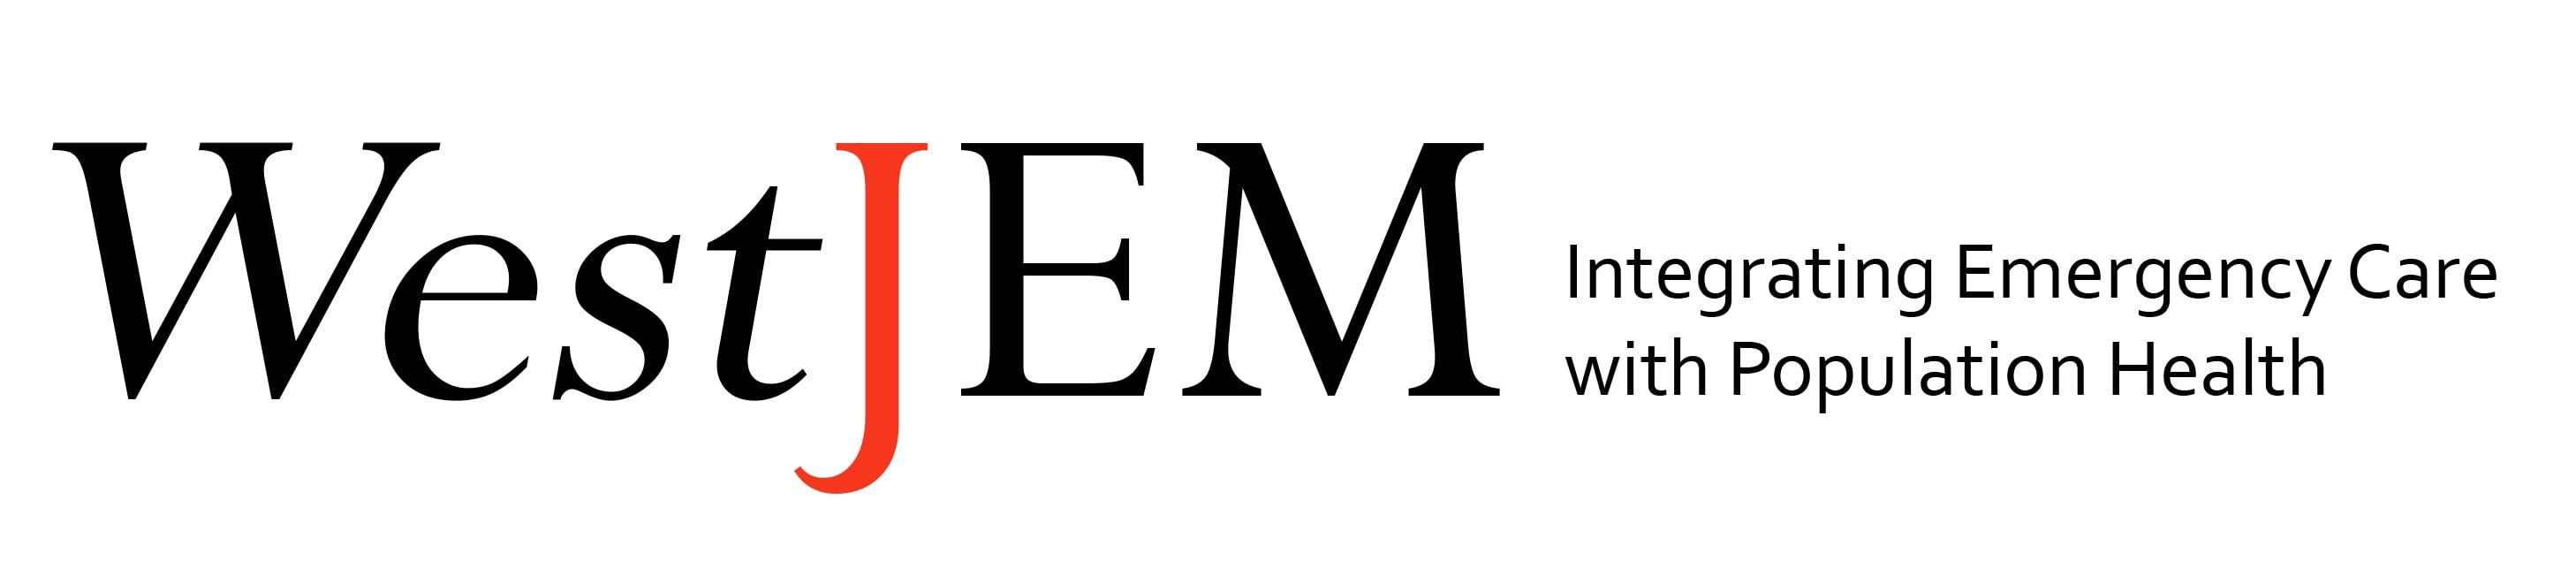 CPC-EM: Volume 1 Issue 3 Archives - The Western Journal of Emergency Medicine